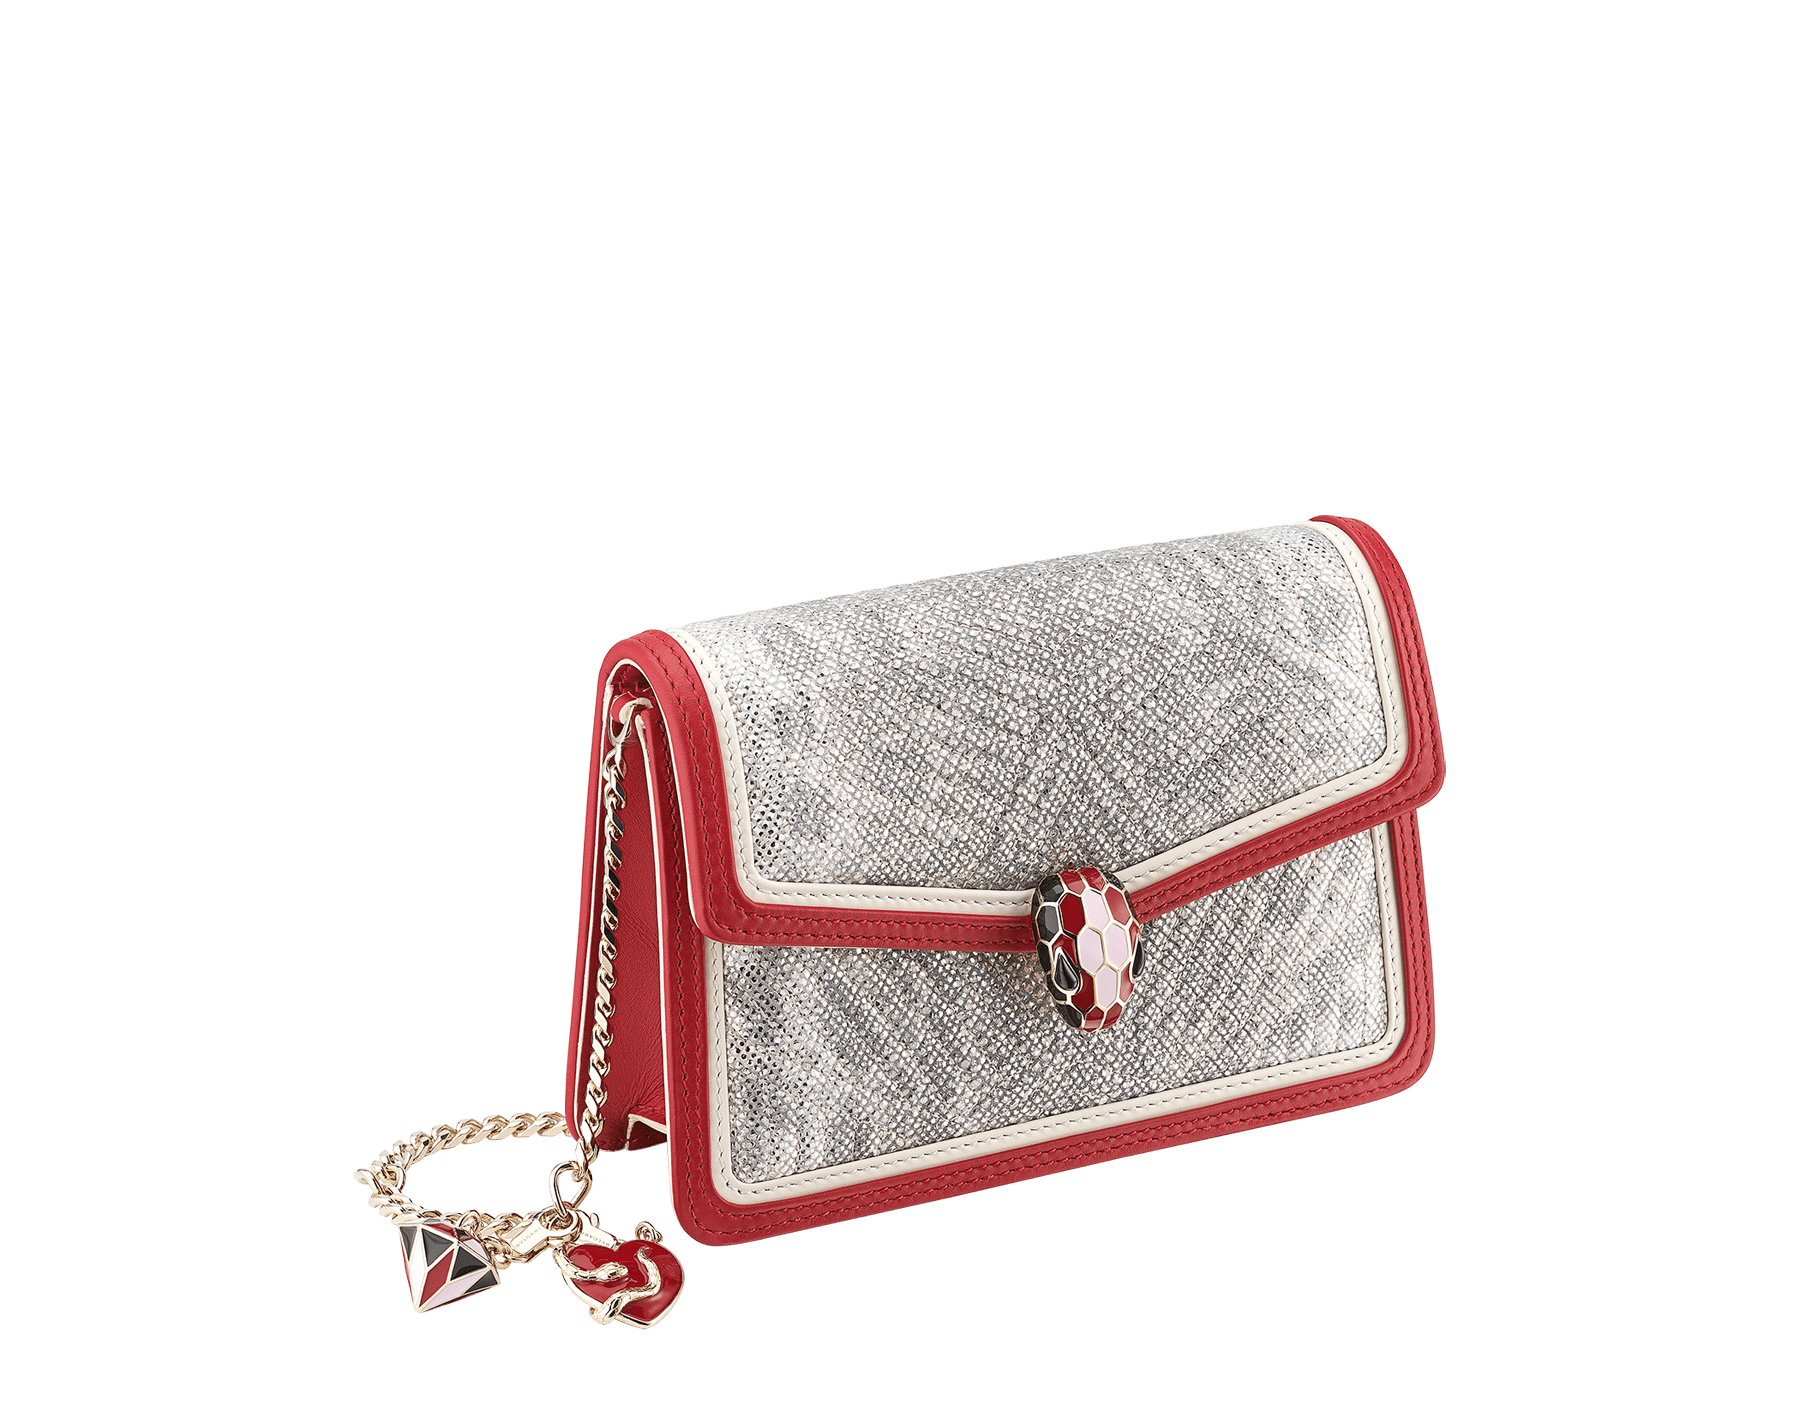 Serpenti Diamond Blast crossbody micro bag in white agate quilted metallic karung skin body and carmine jasper and white agate calf leather frames. Snakehead closure in light gold plated brass with black, carmine jasper and rosa di Francia enamel, black onyx eyes, heart-shaped and three-dimensional diamond-shaped detachable charms. 289550 image 2